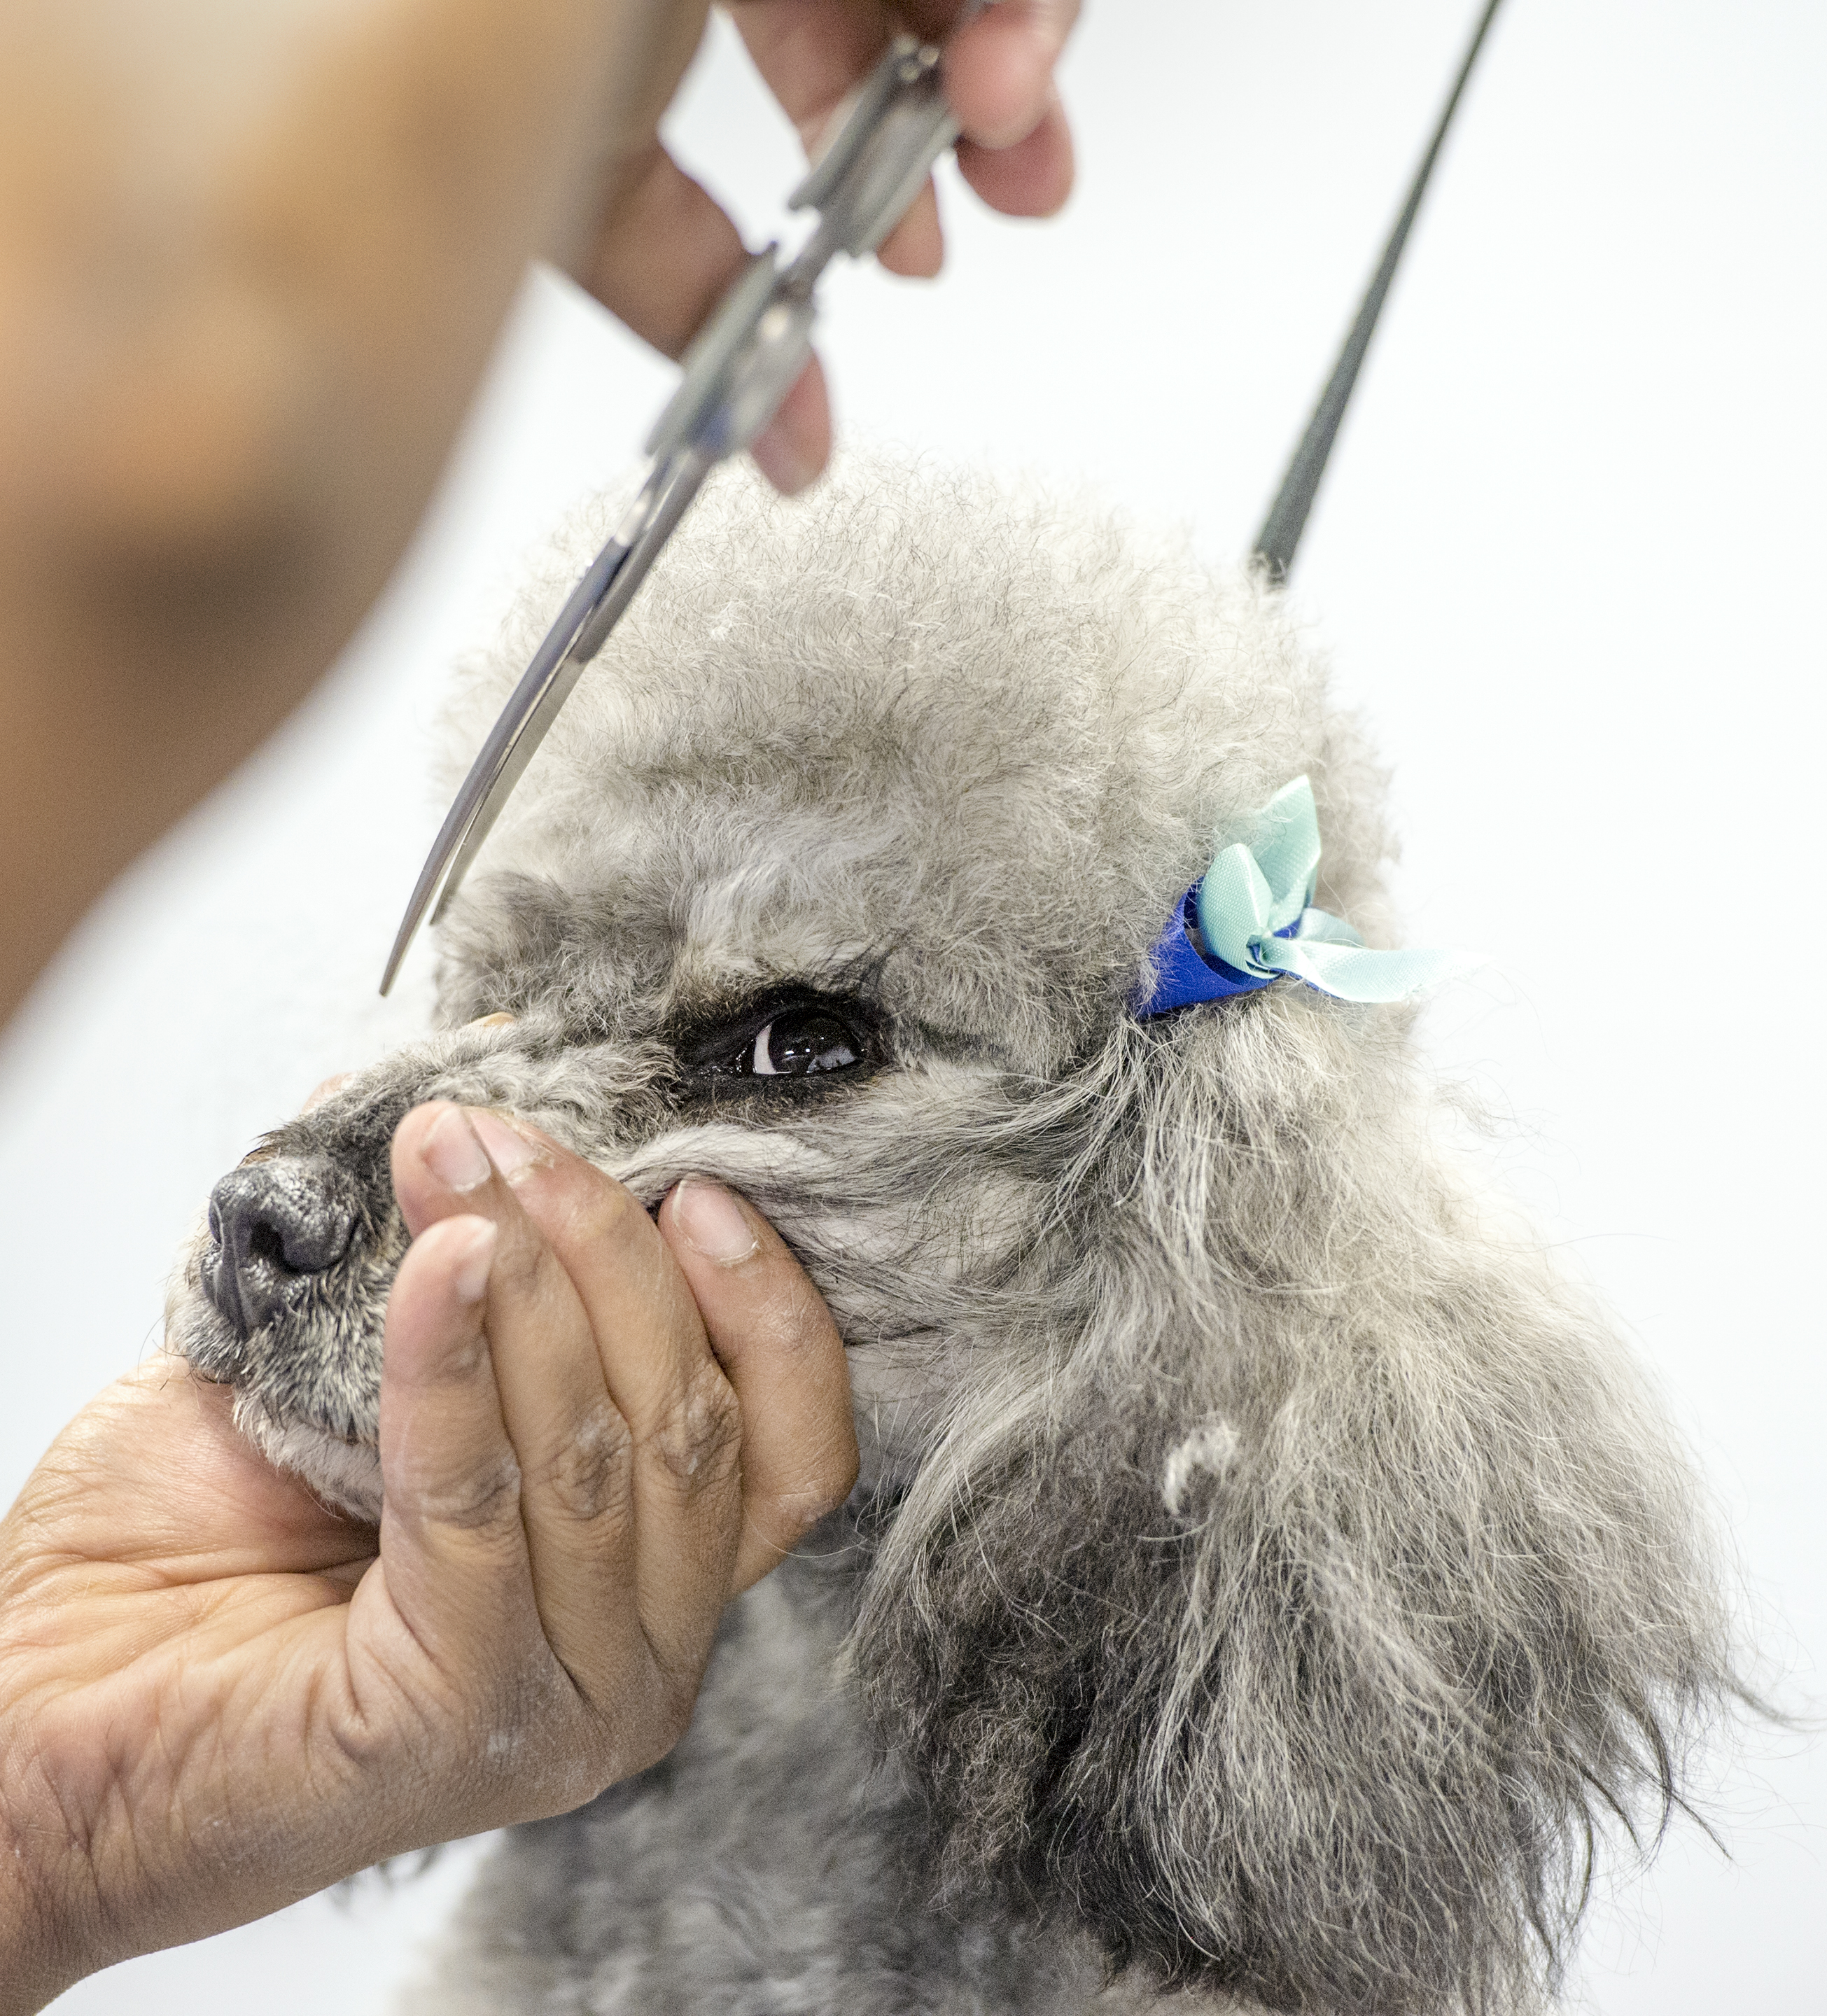 WHY DOG GROOMING? NUMBERS TELL THE STORY